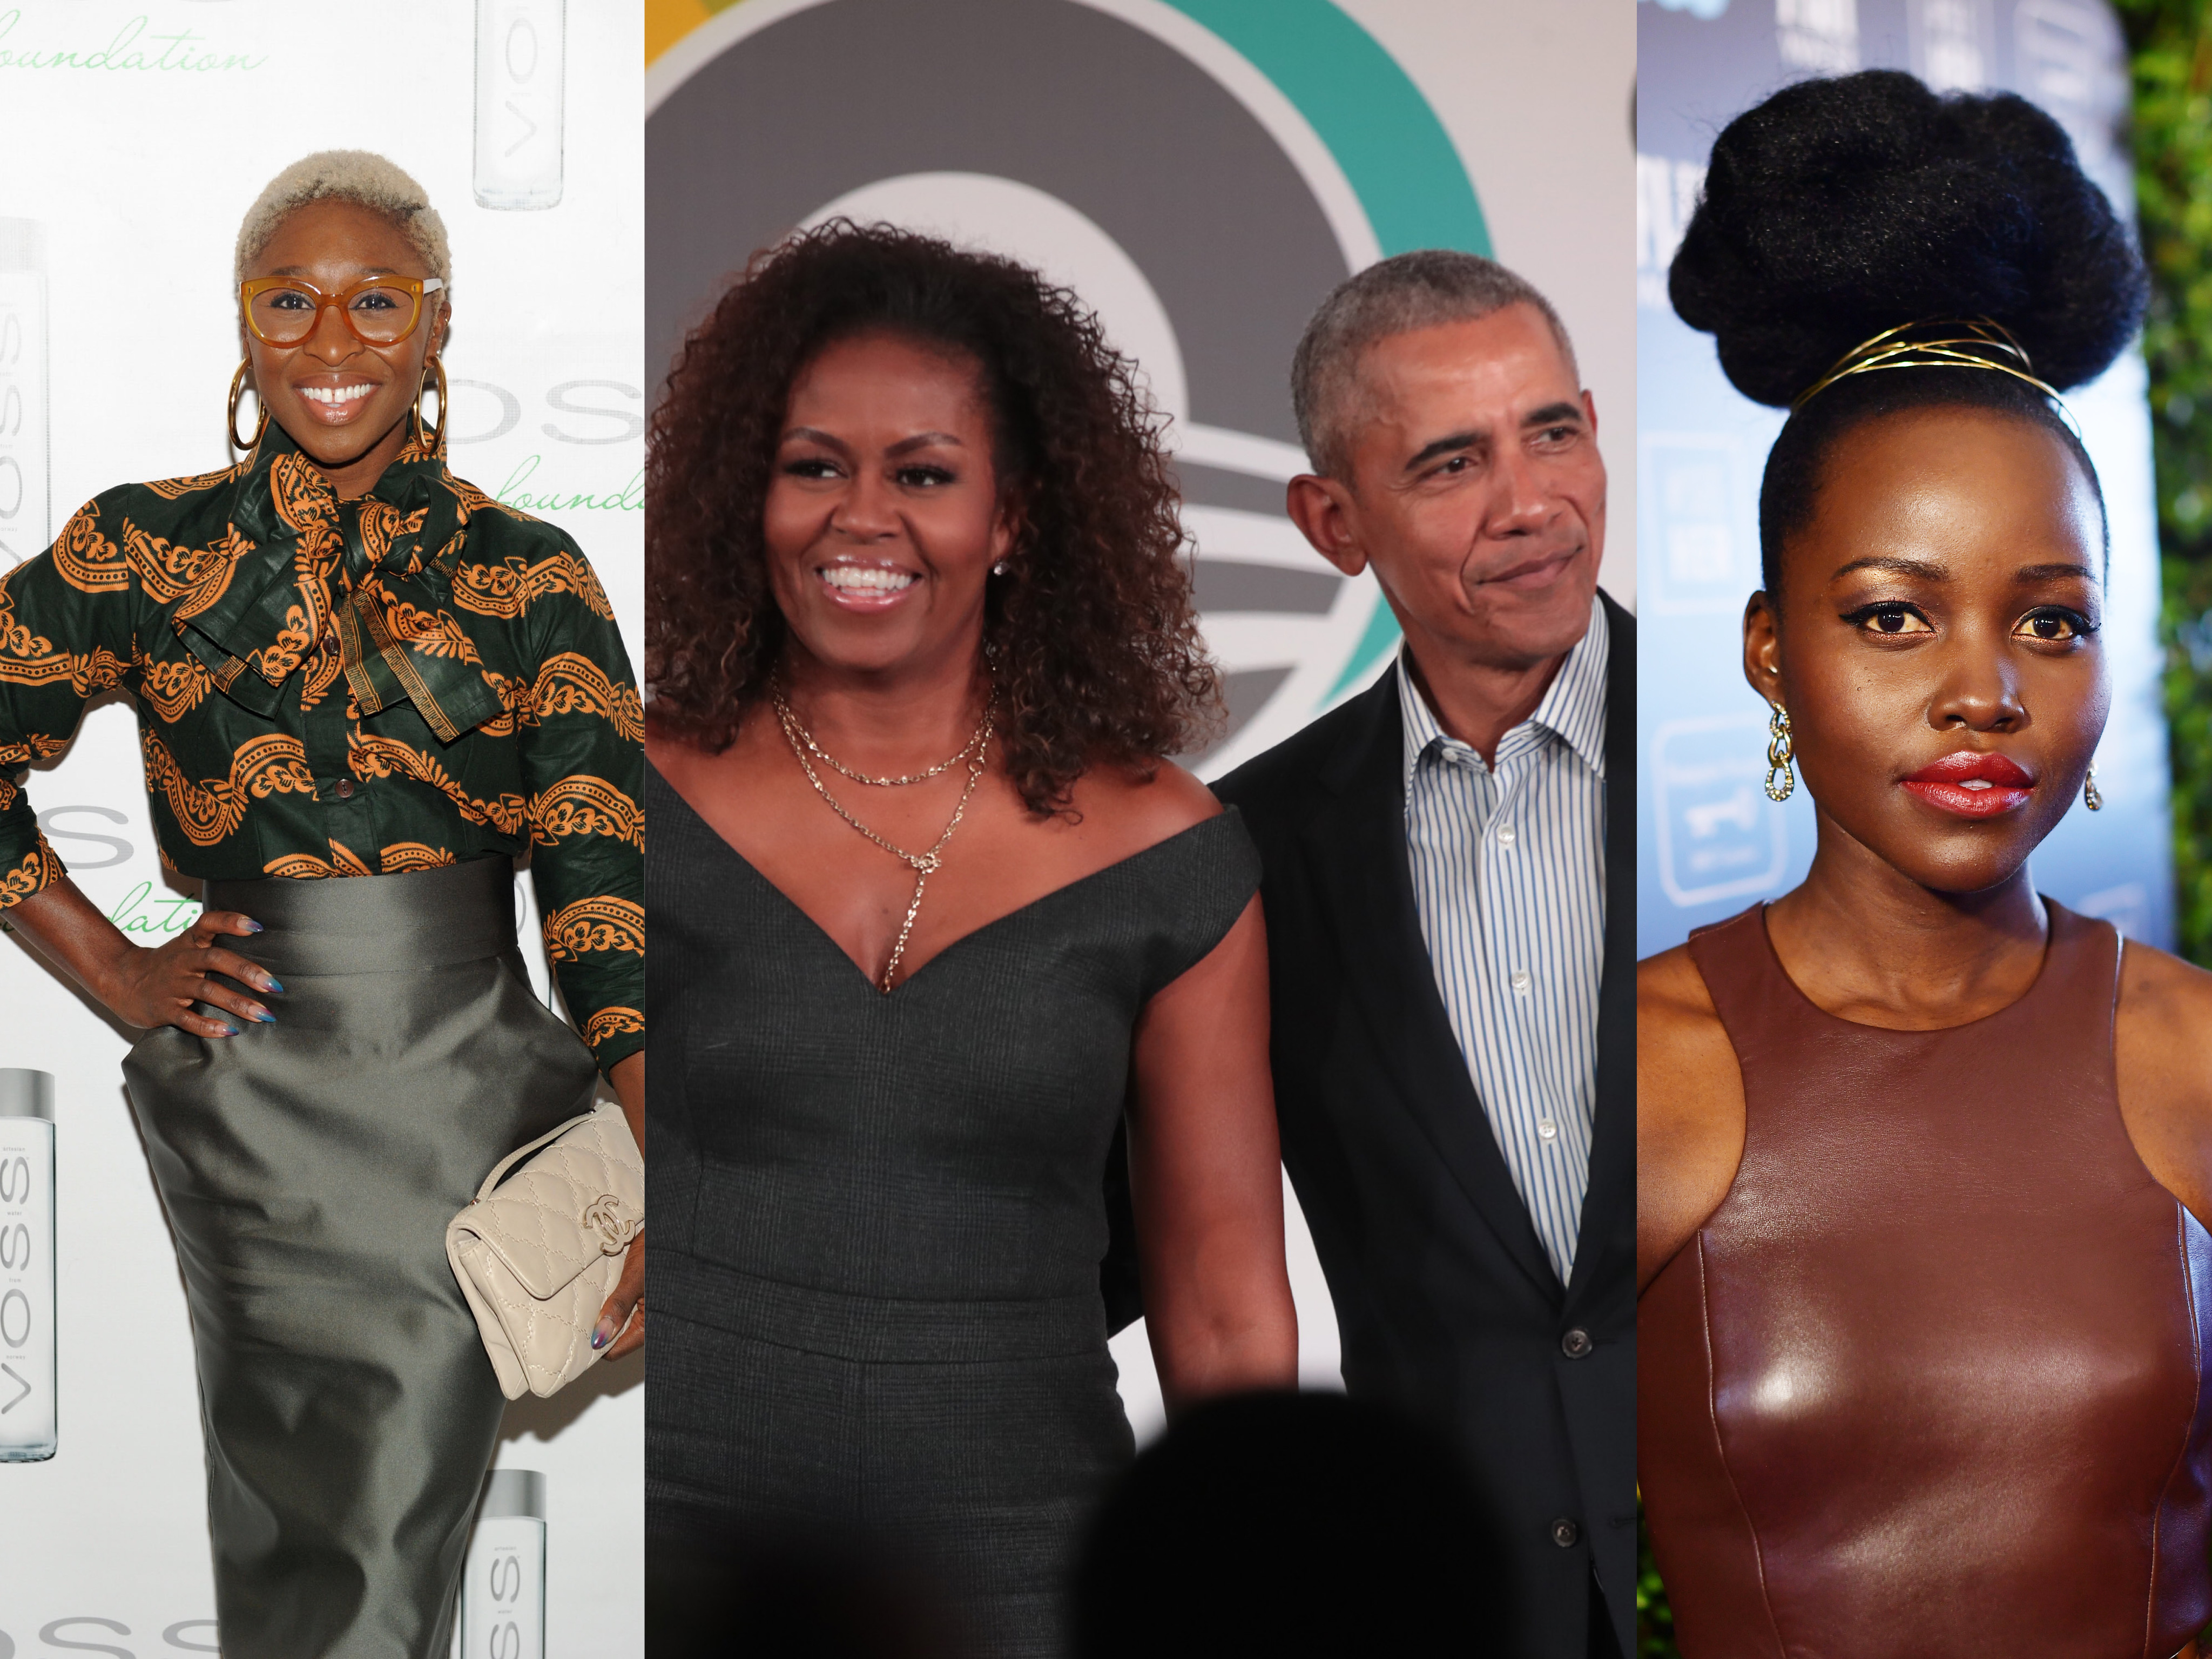 The nominations for the 2020 Oscar's have been released and the Obama's documentary and Cynthia Erivo are among the nominees.